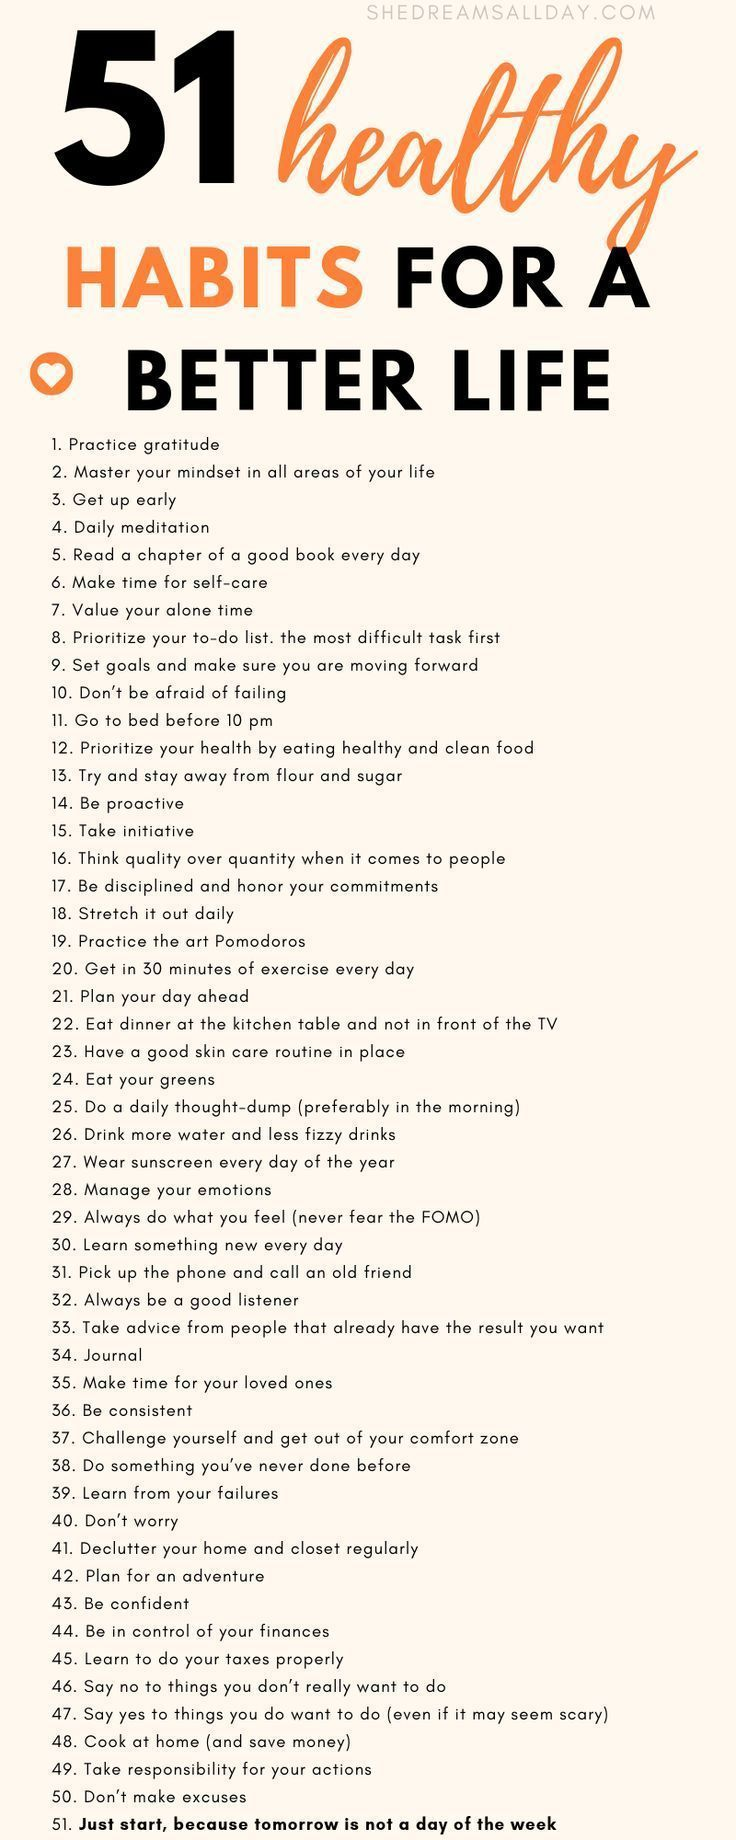 51 Positive and Healthy Habits For an Amazing Life